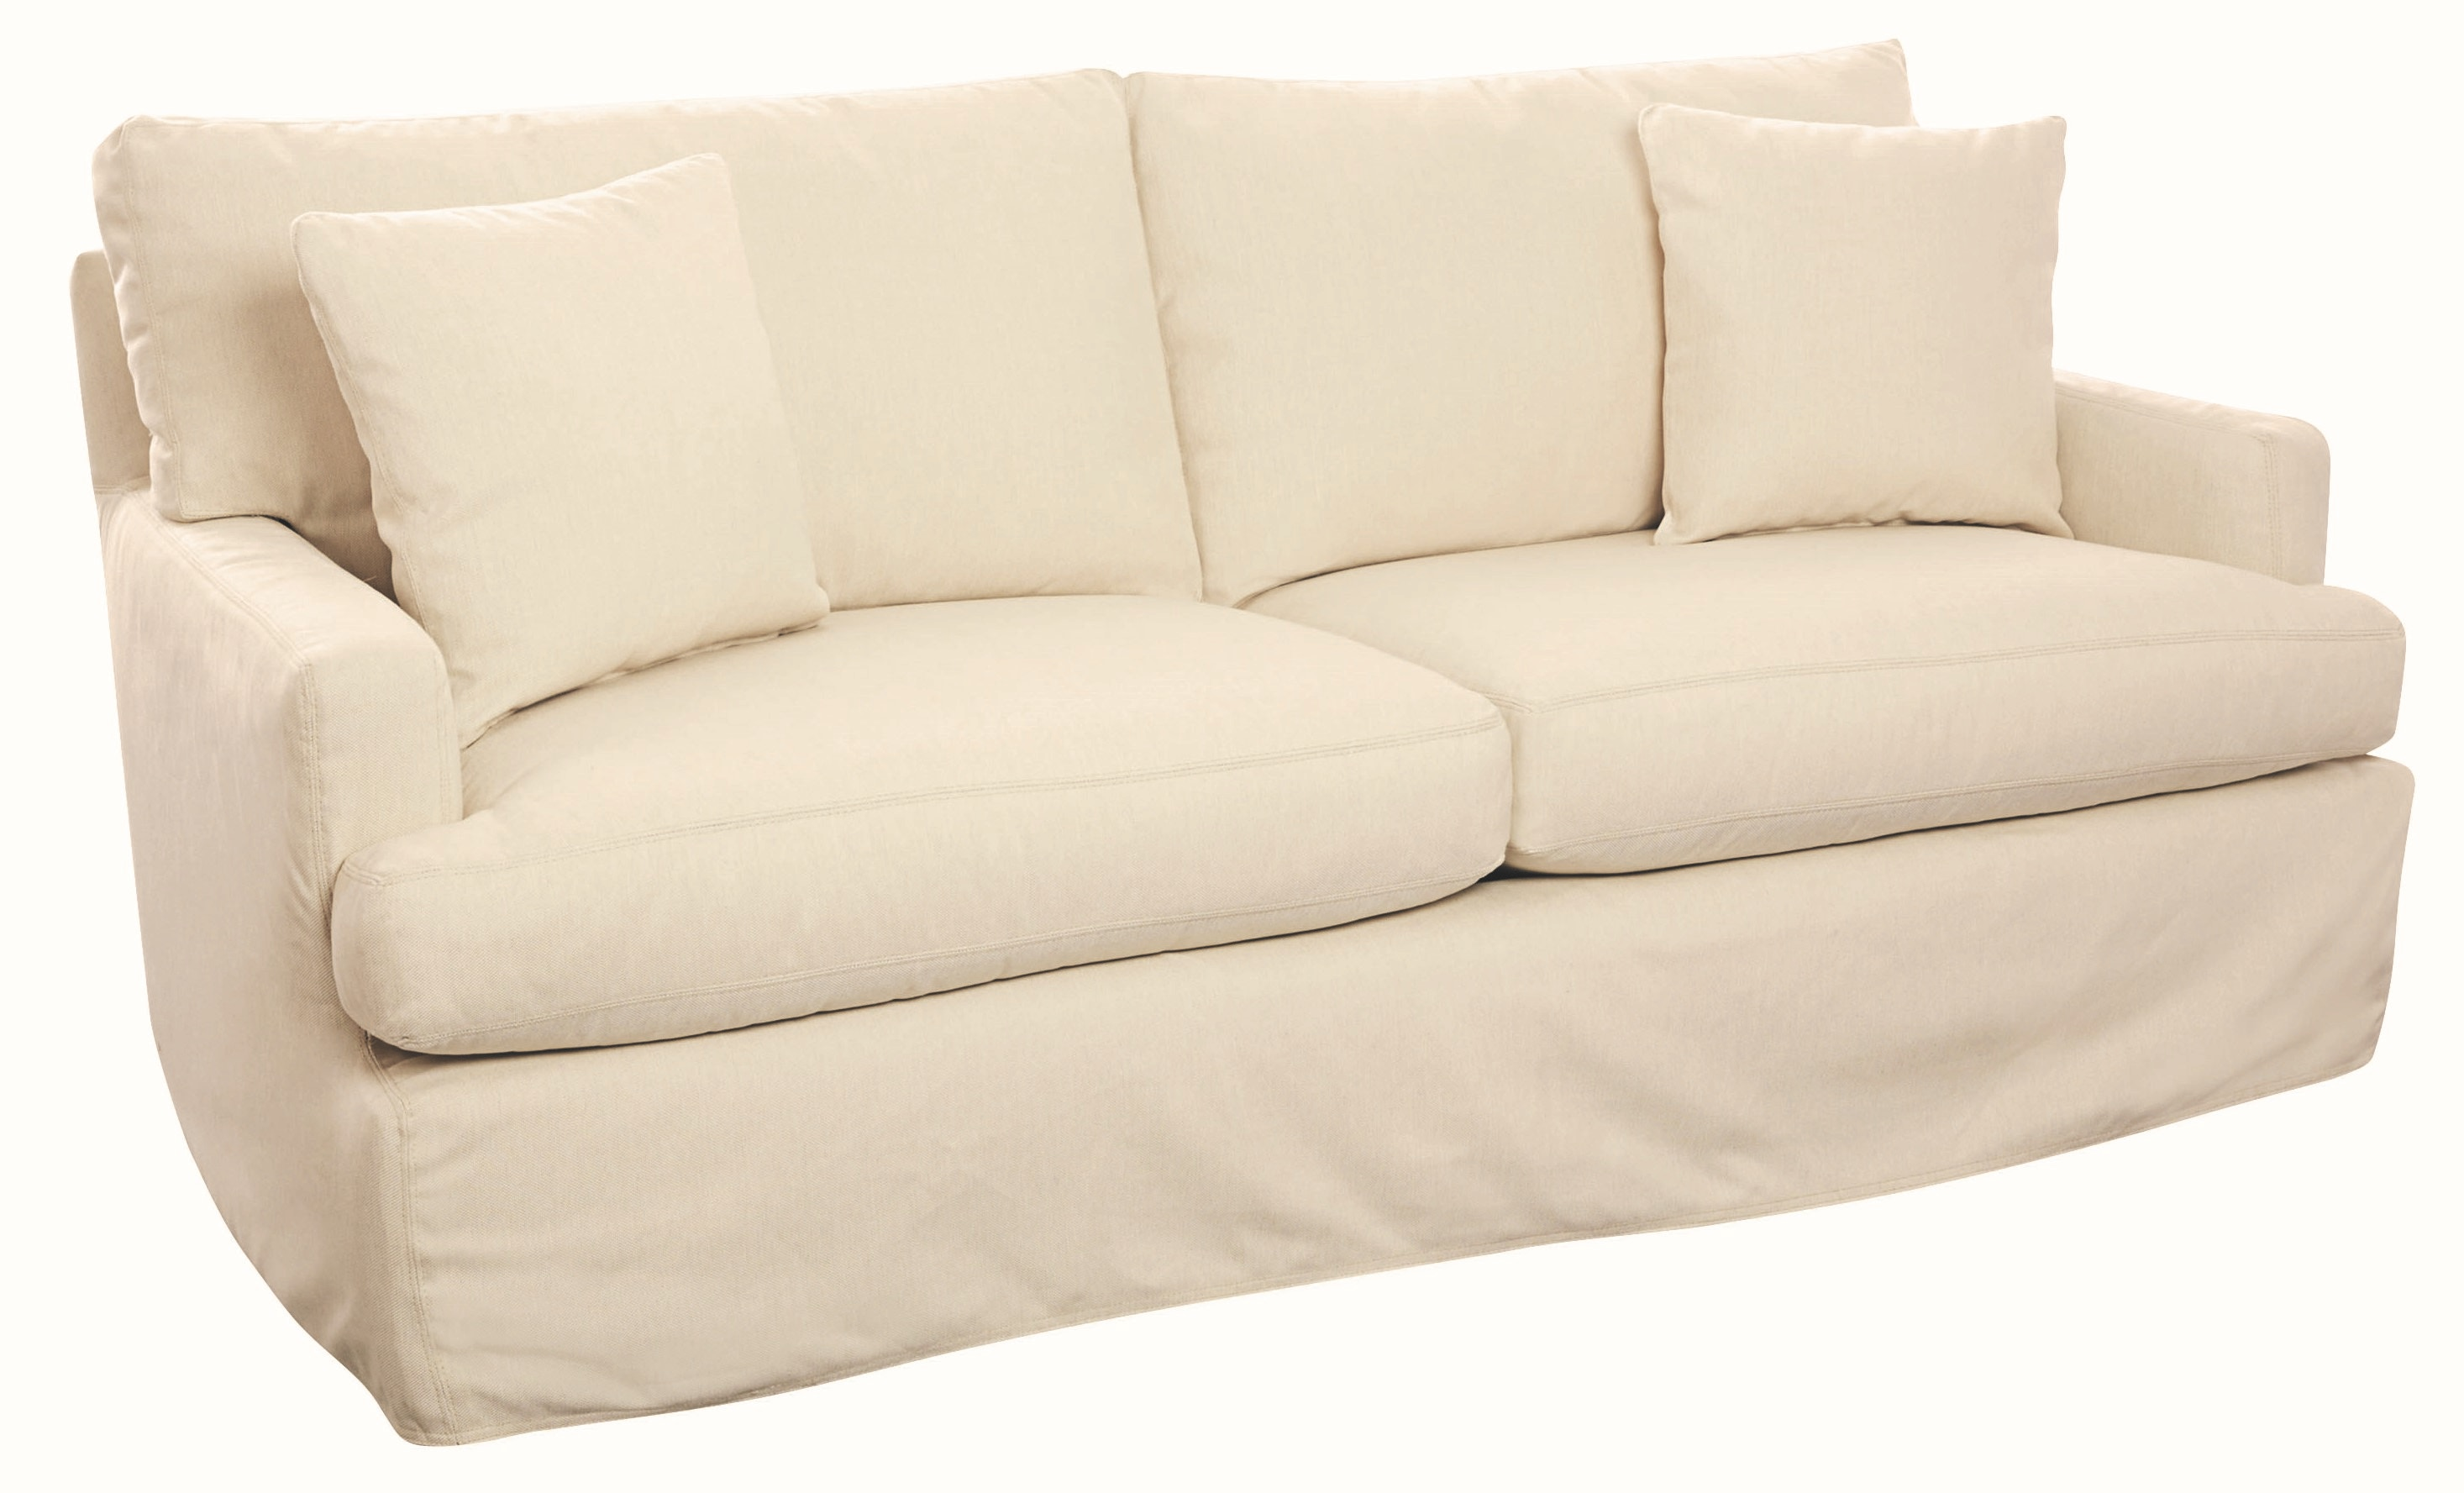 Captivating Lee Industries Rockport Outdoor Slipcovered Apartment Sofa US156 11